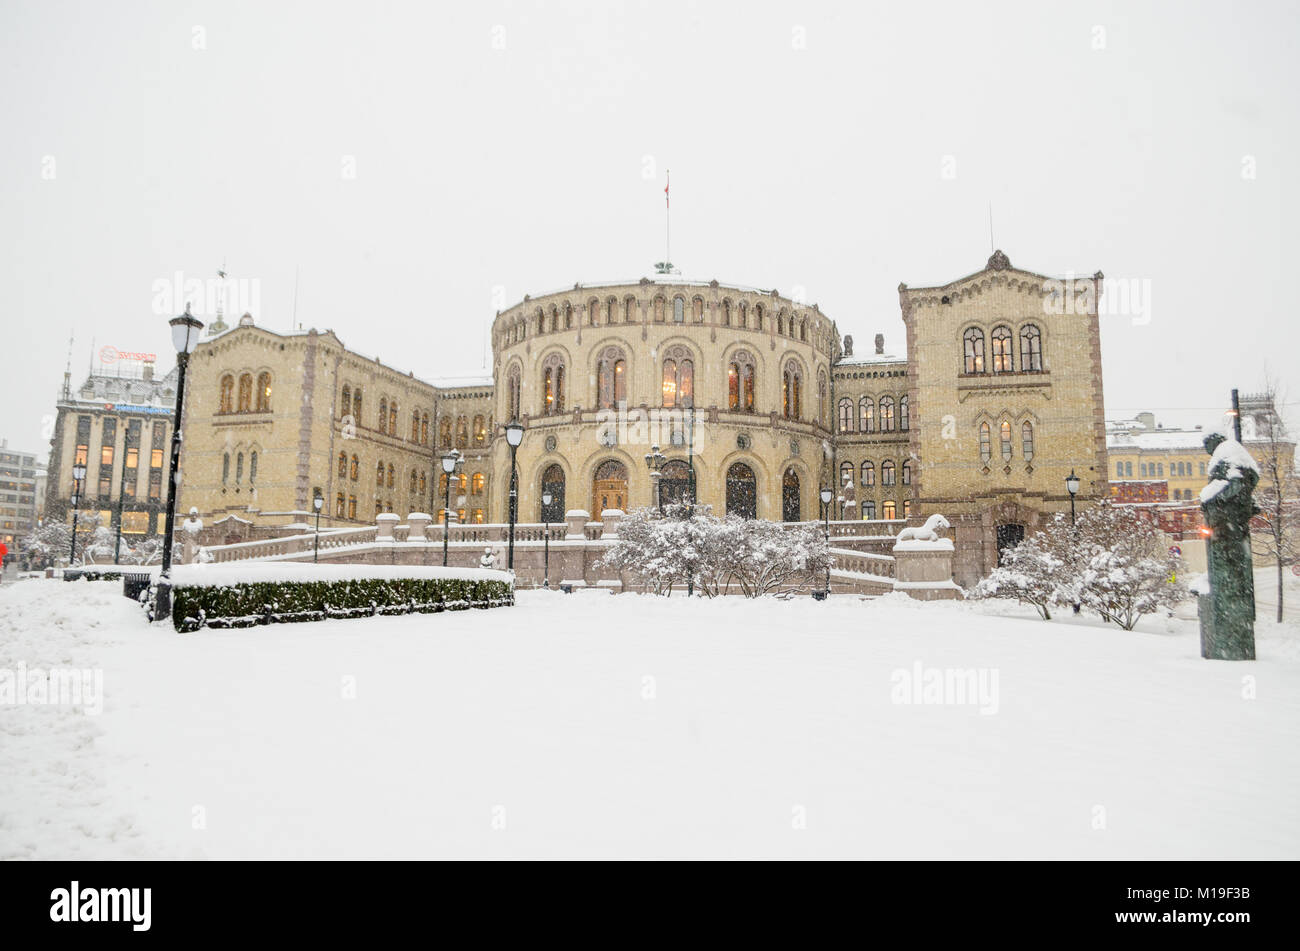 The front of the Storting building, located at 22 Karl Johans gate in central Oslo, Norway. - Stock Image